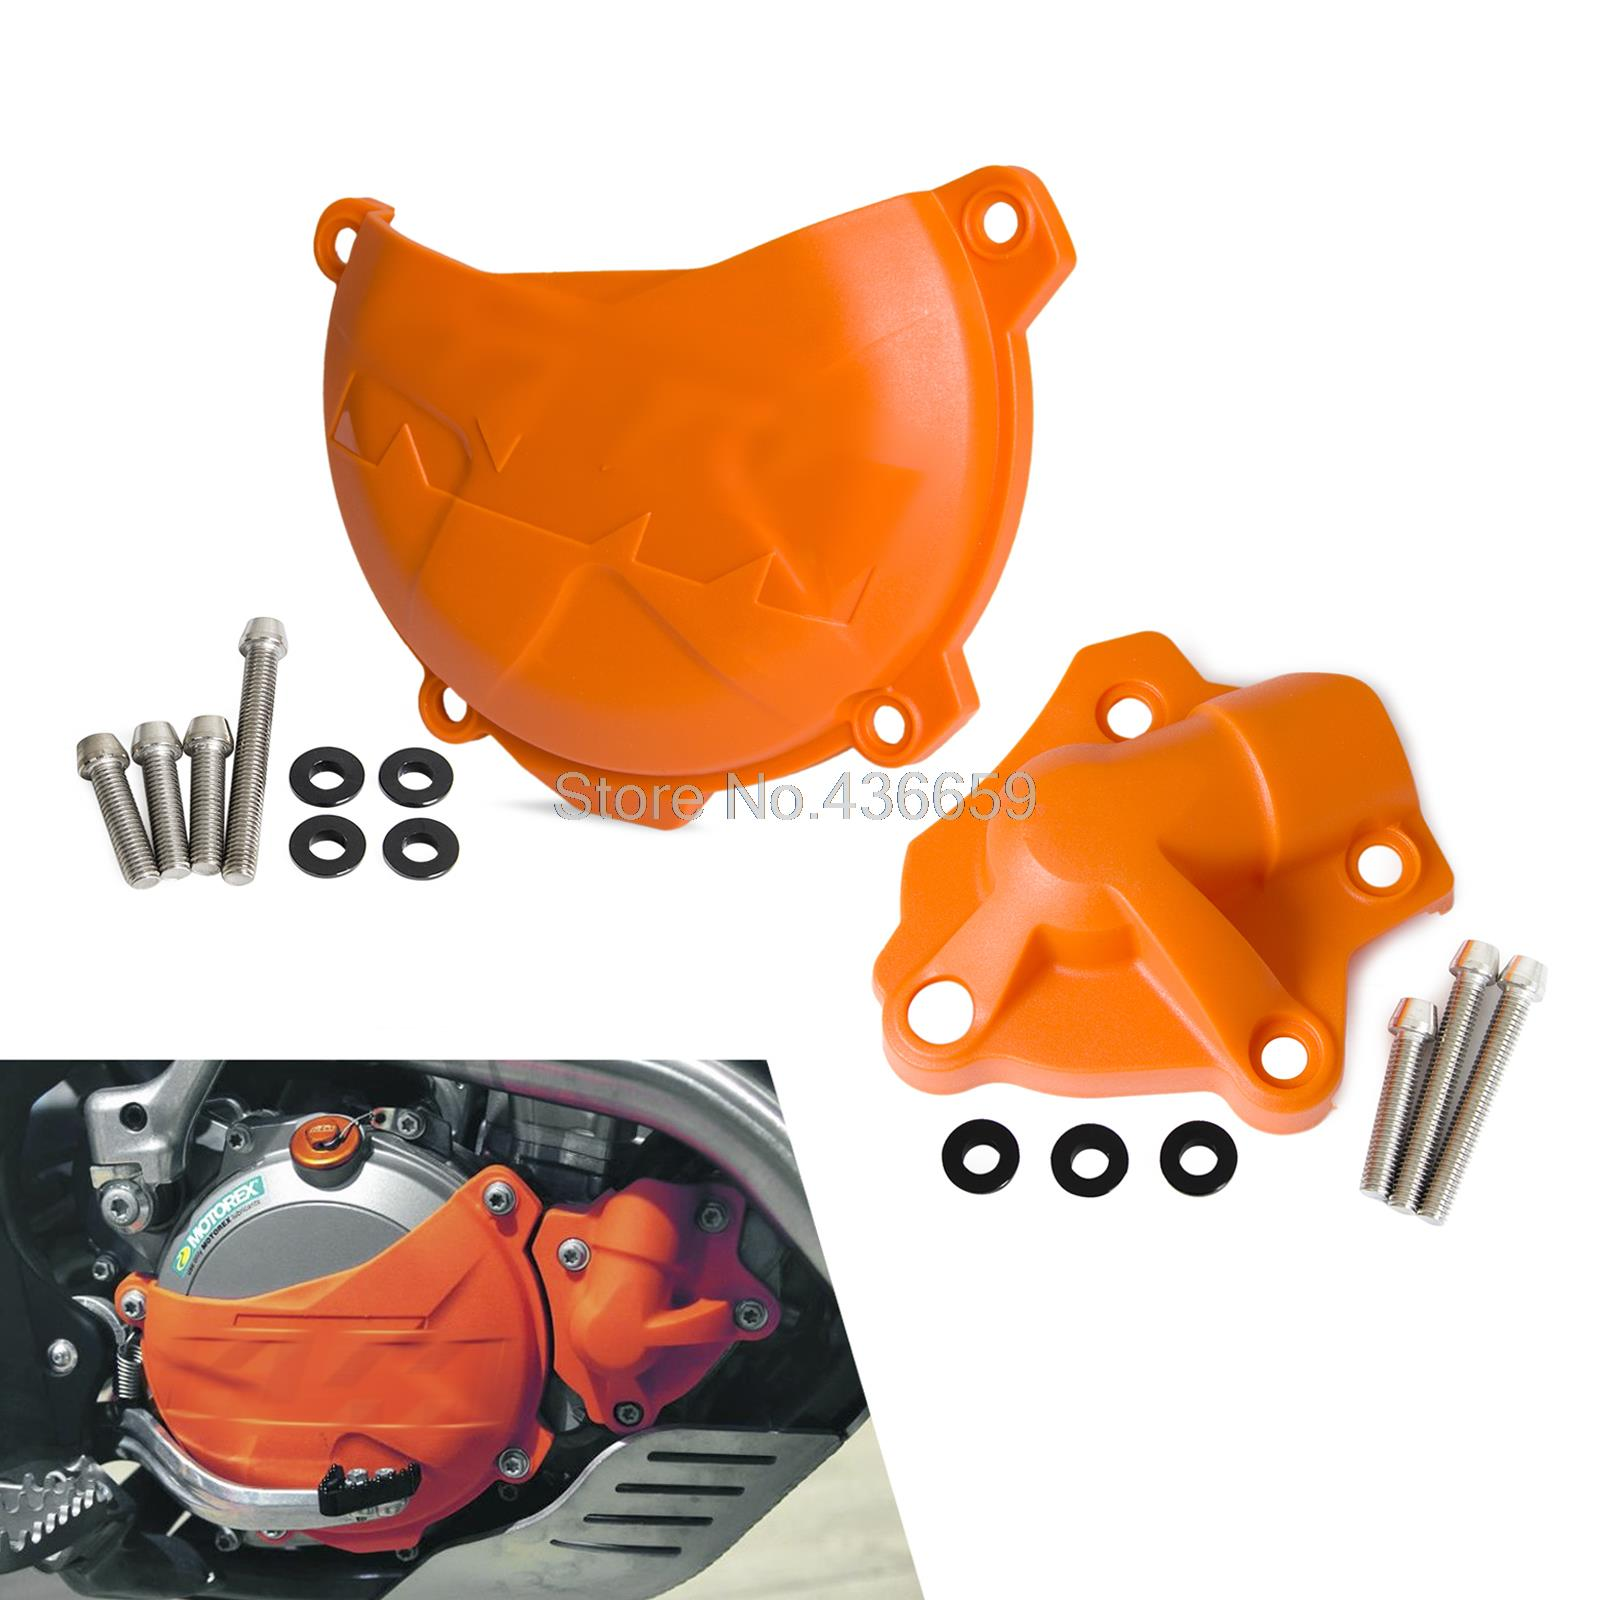 Clutch Cover/Water Pump Cover Protector for KTM 350 EXC-F SIX DAYS 2012-2015 2016